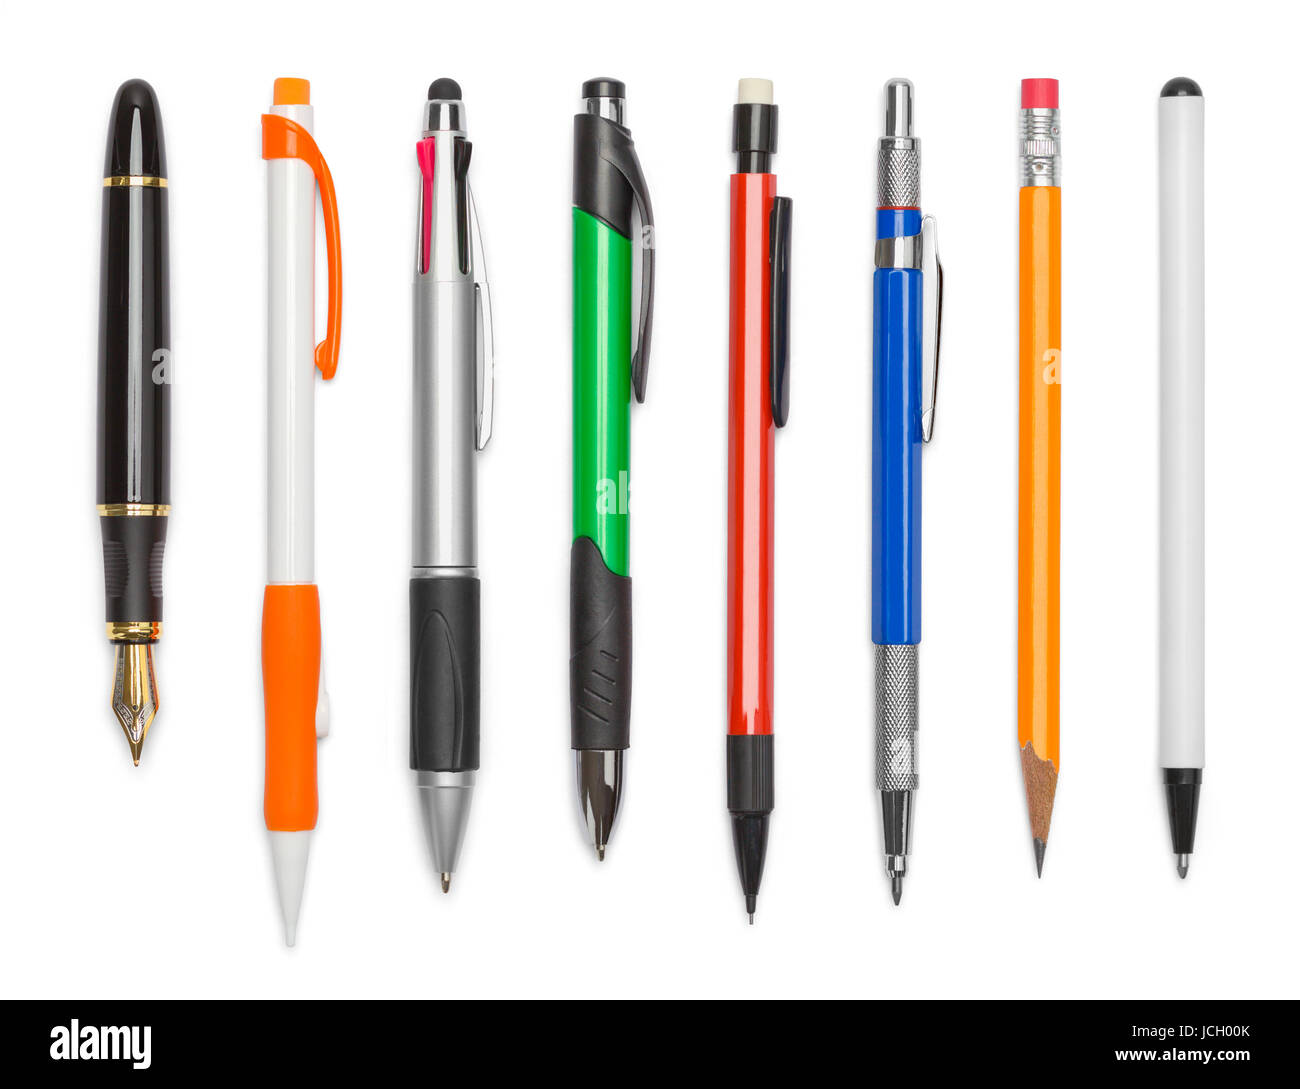 Various Pens and Pencils Isolated on White Background. Stock Photo